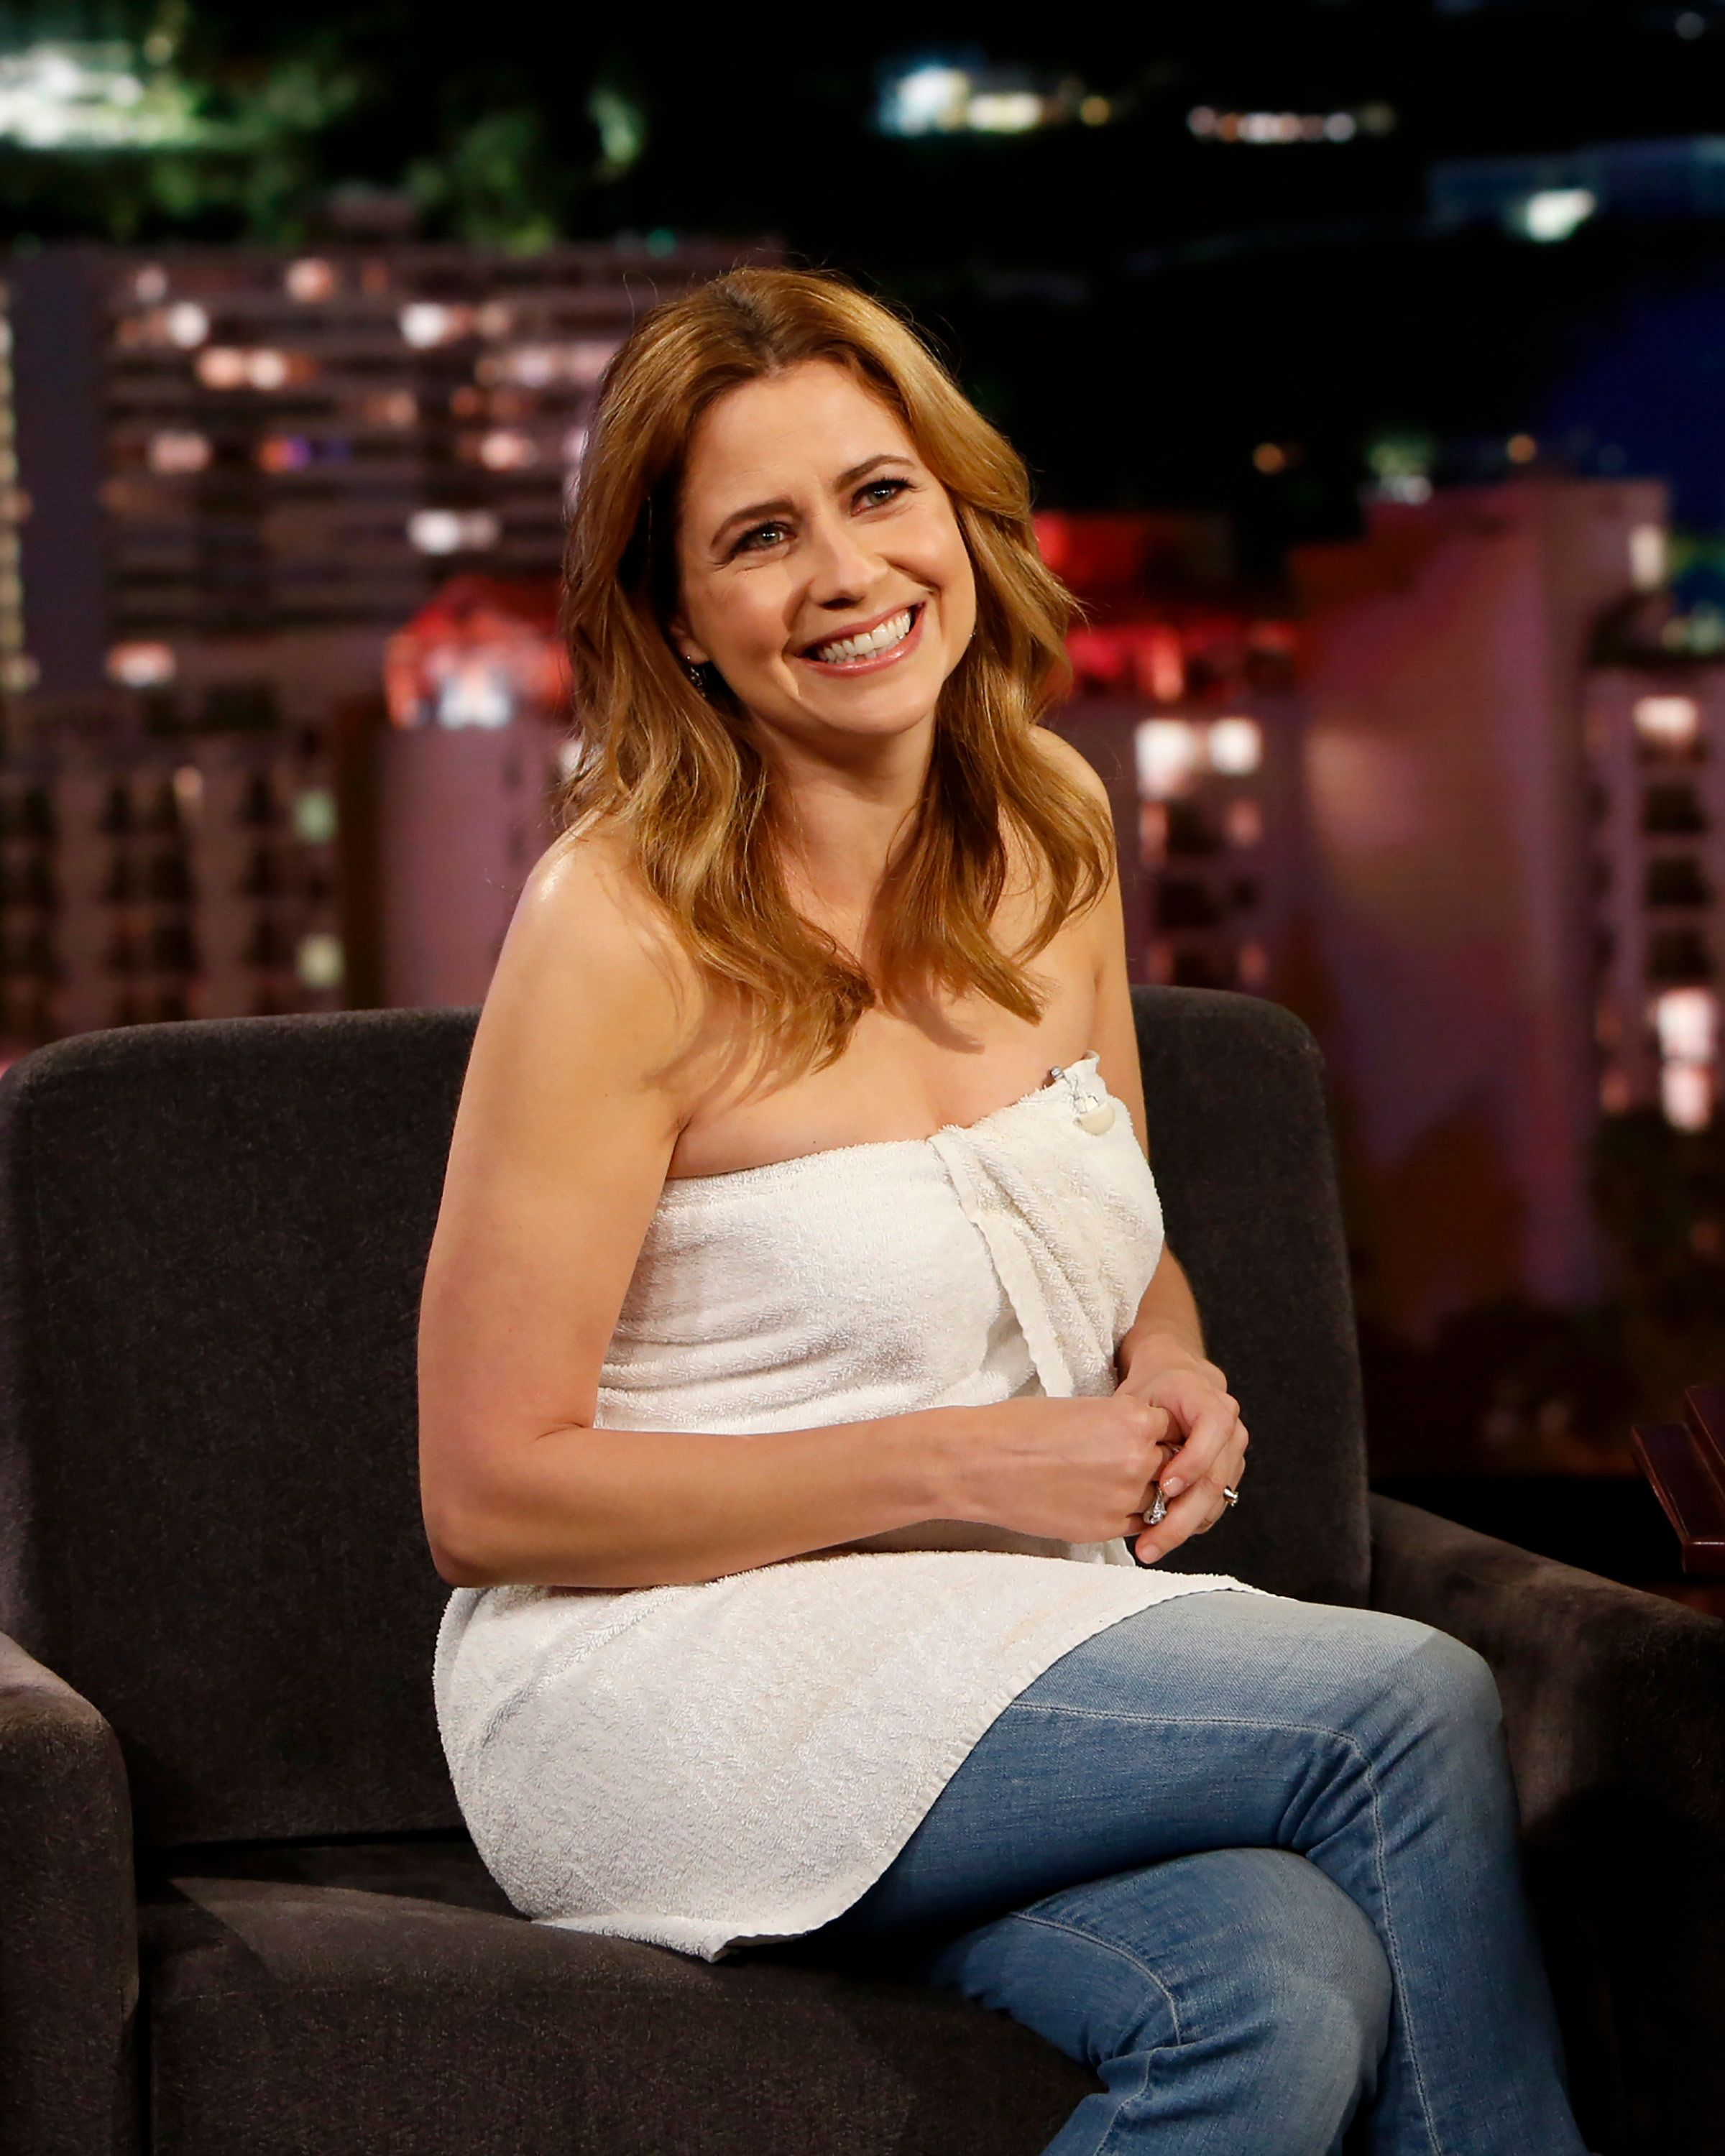 Communication on this topic: Danica d'Hondt, jenna-fischer/